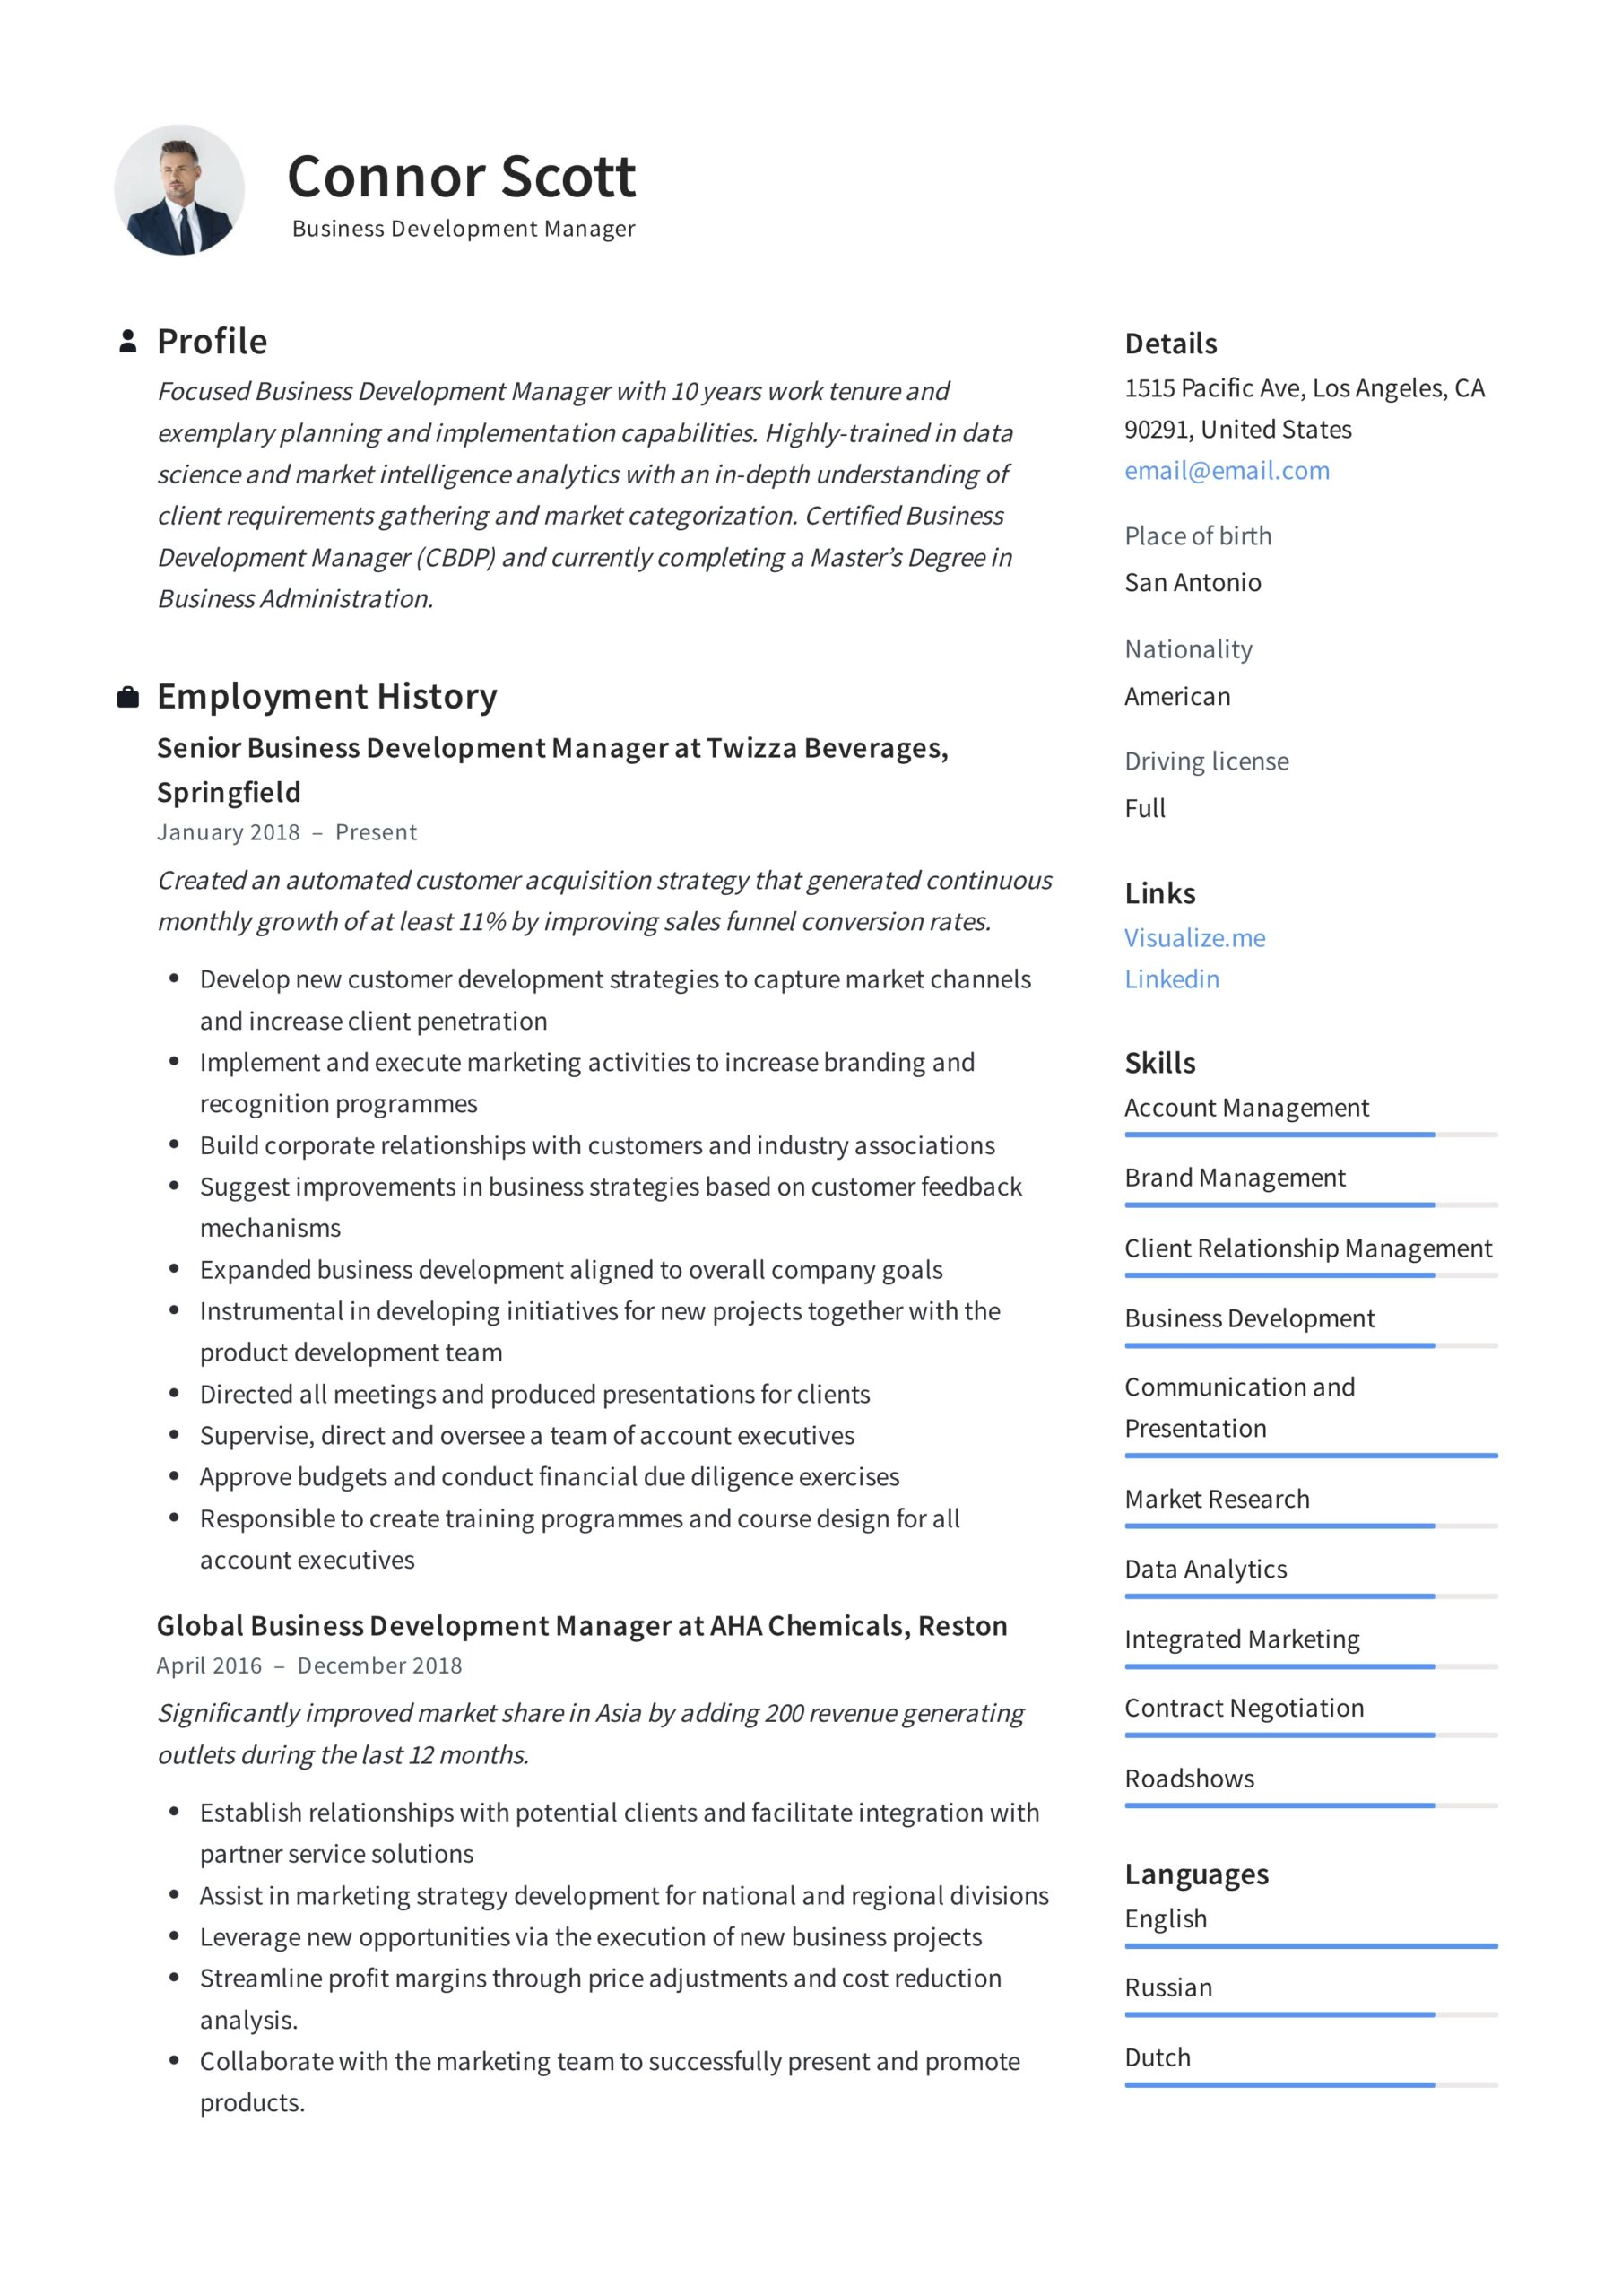 business development manager resume guide templates pdf associate samples for electronics Resume Business Development Associate Resume